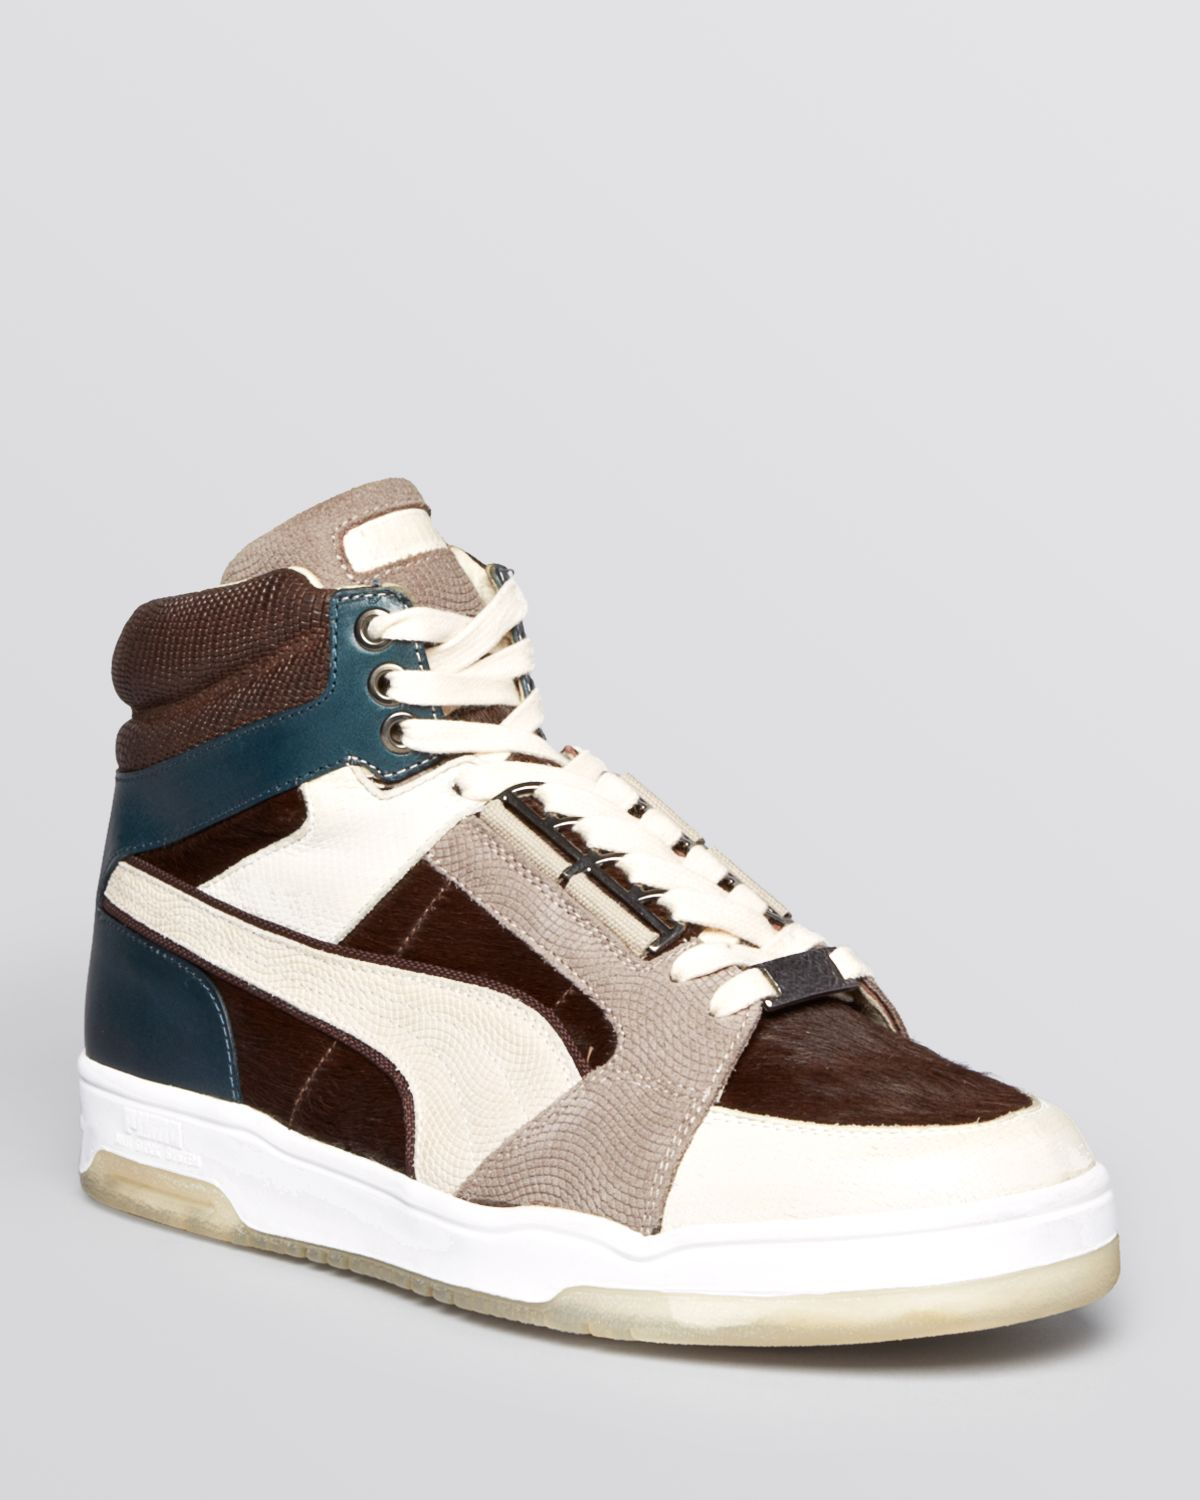 Lyst Puma Alexander Mcqueen Slipstream X Made In Italy